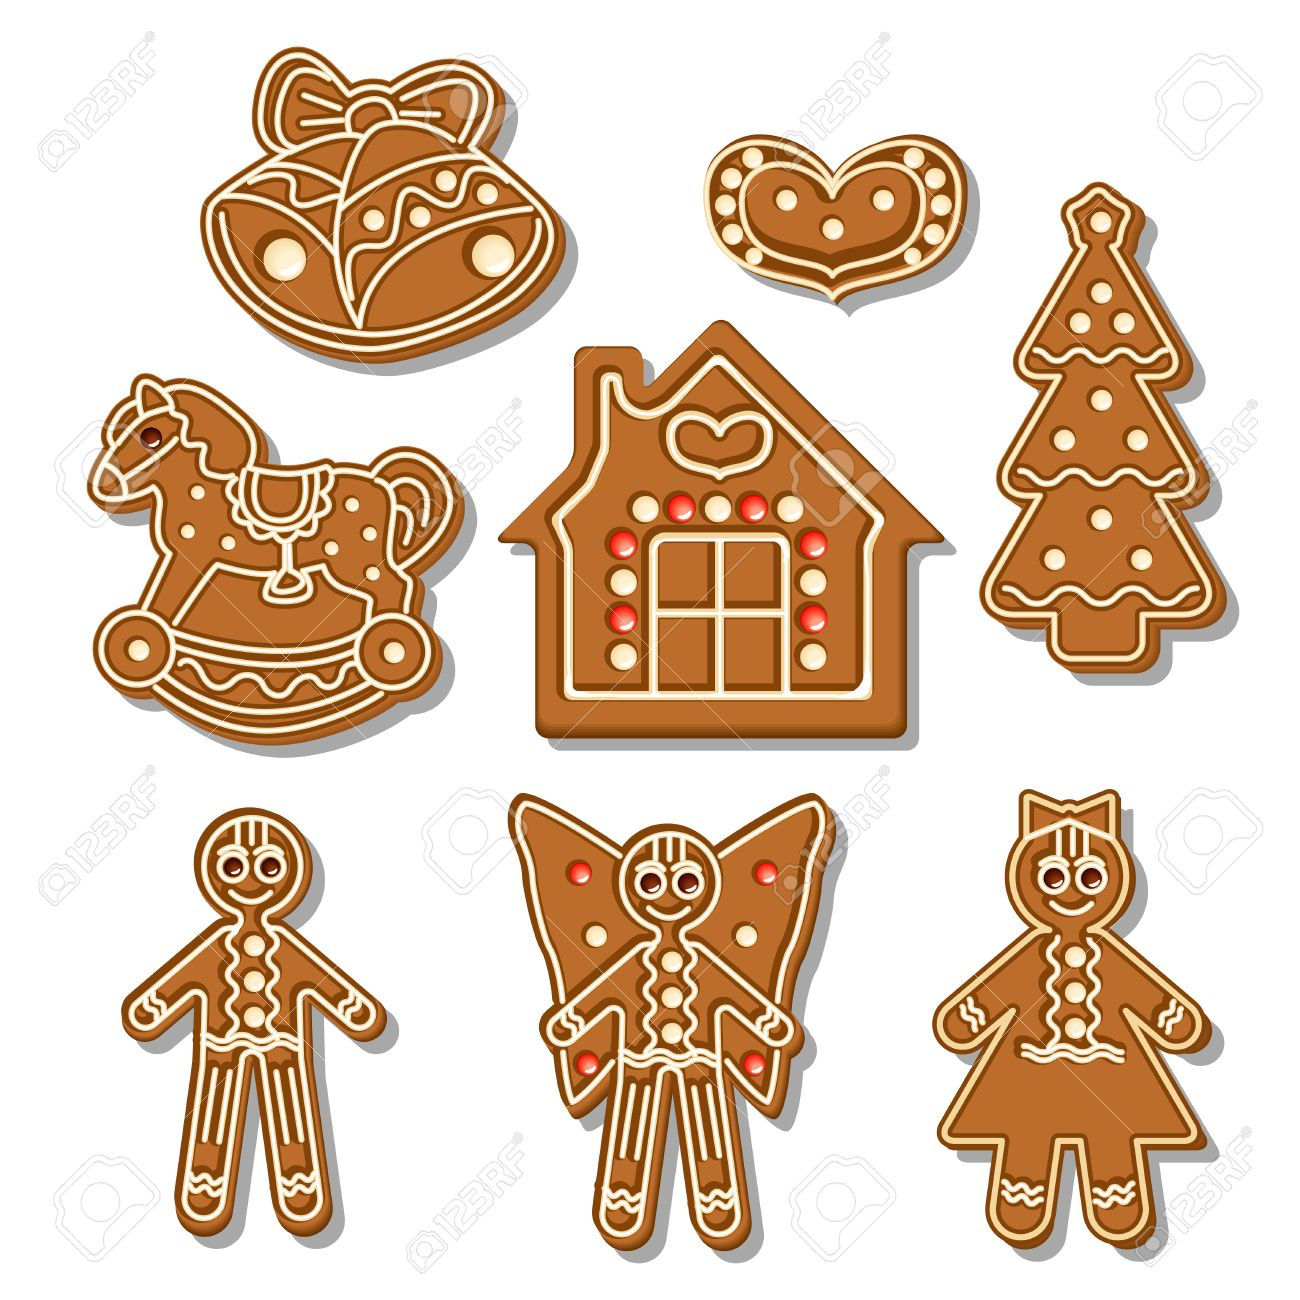 Set of different gingerbread figures on a white background Stock Vector - 22867549